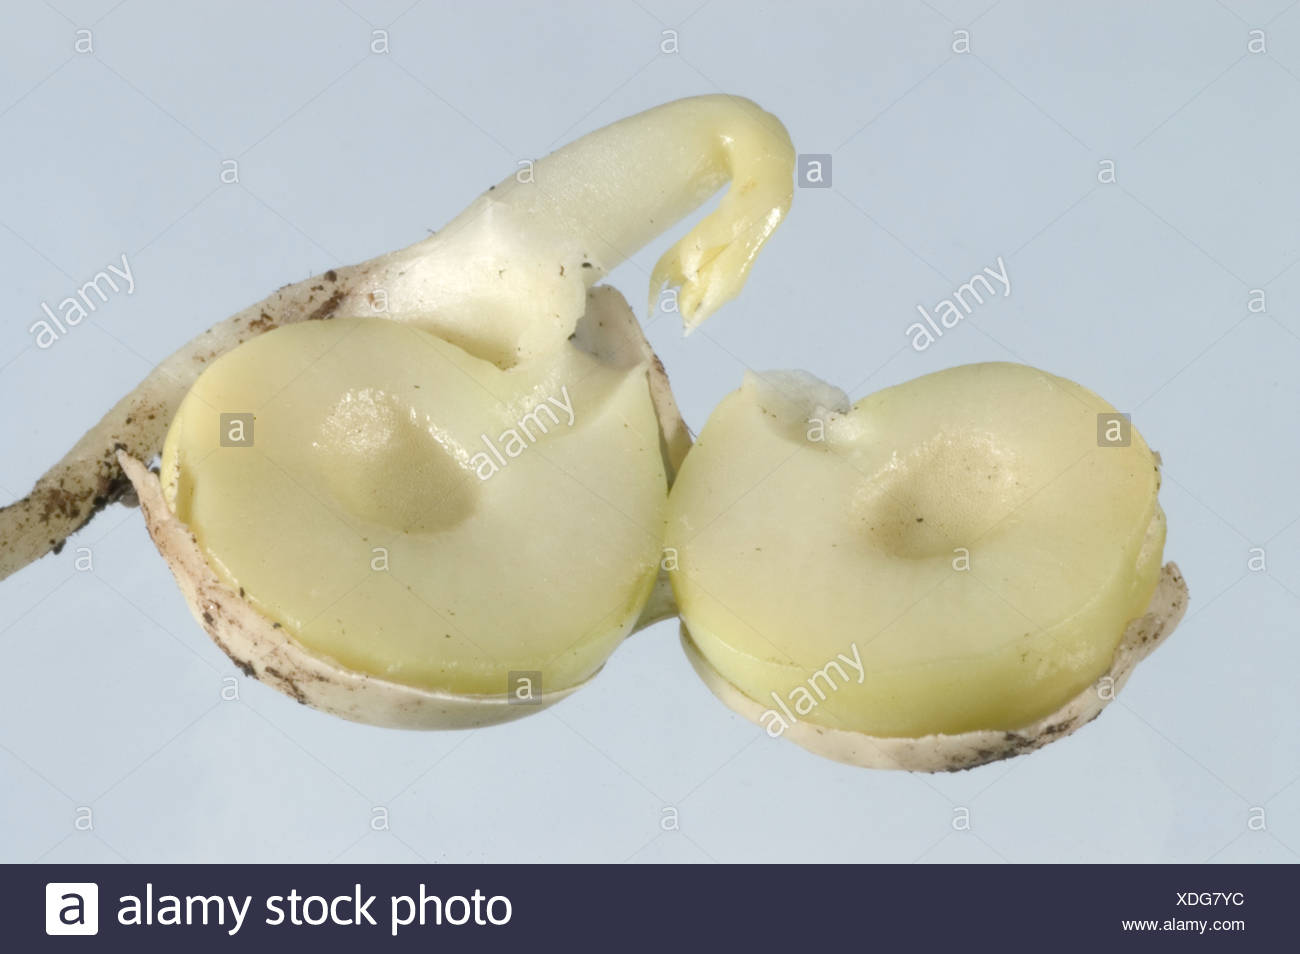 Germinating pea seed to show hollow heart disorder - Stock Image